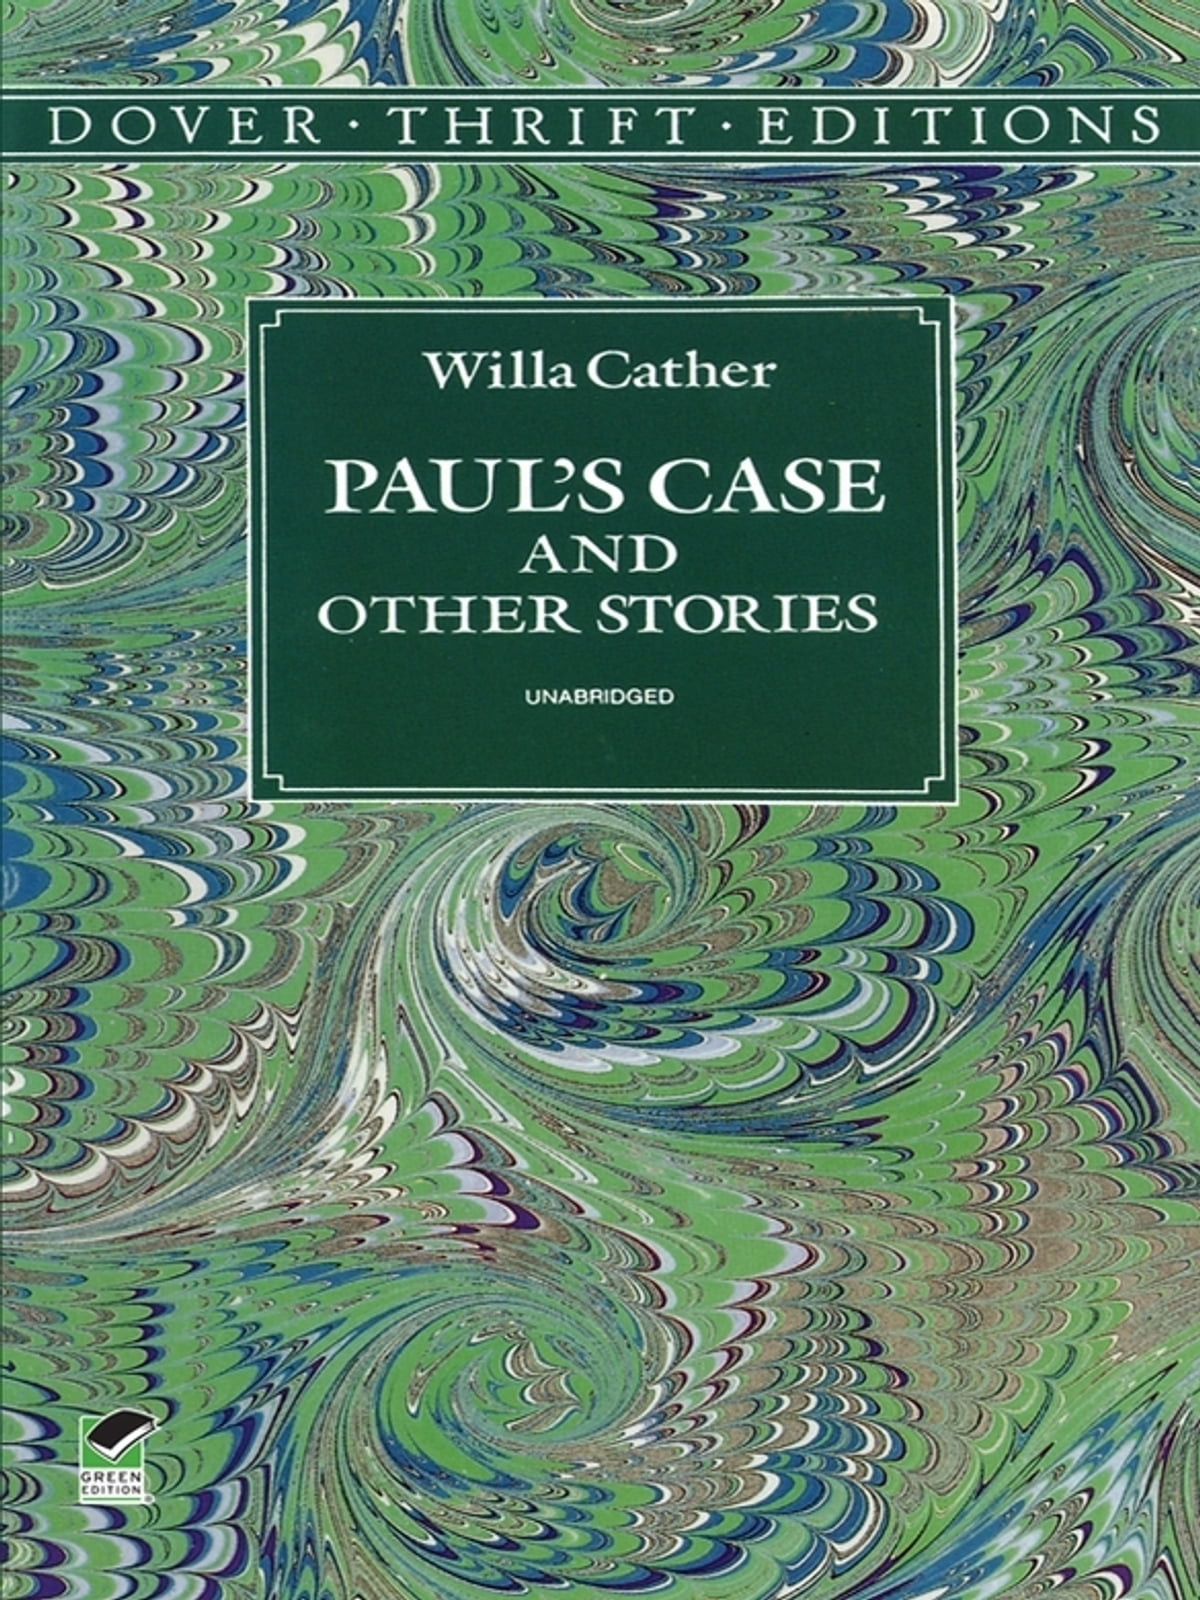 an analysis of pauls case a short story by willa cather